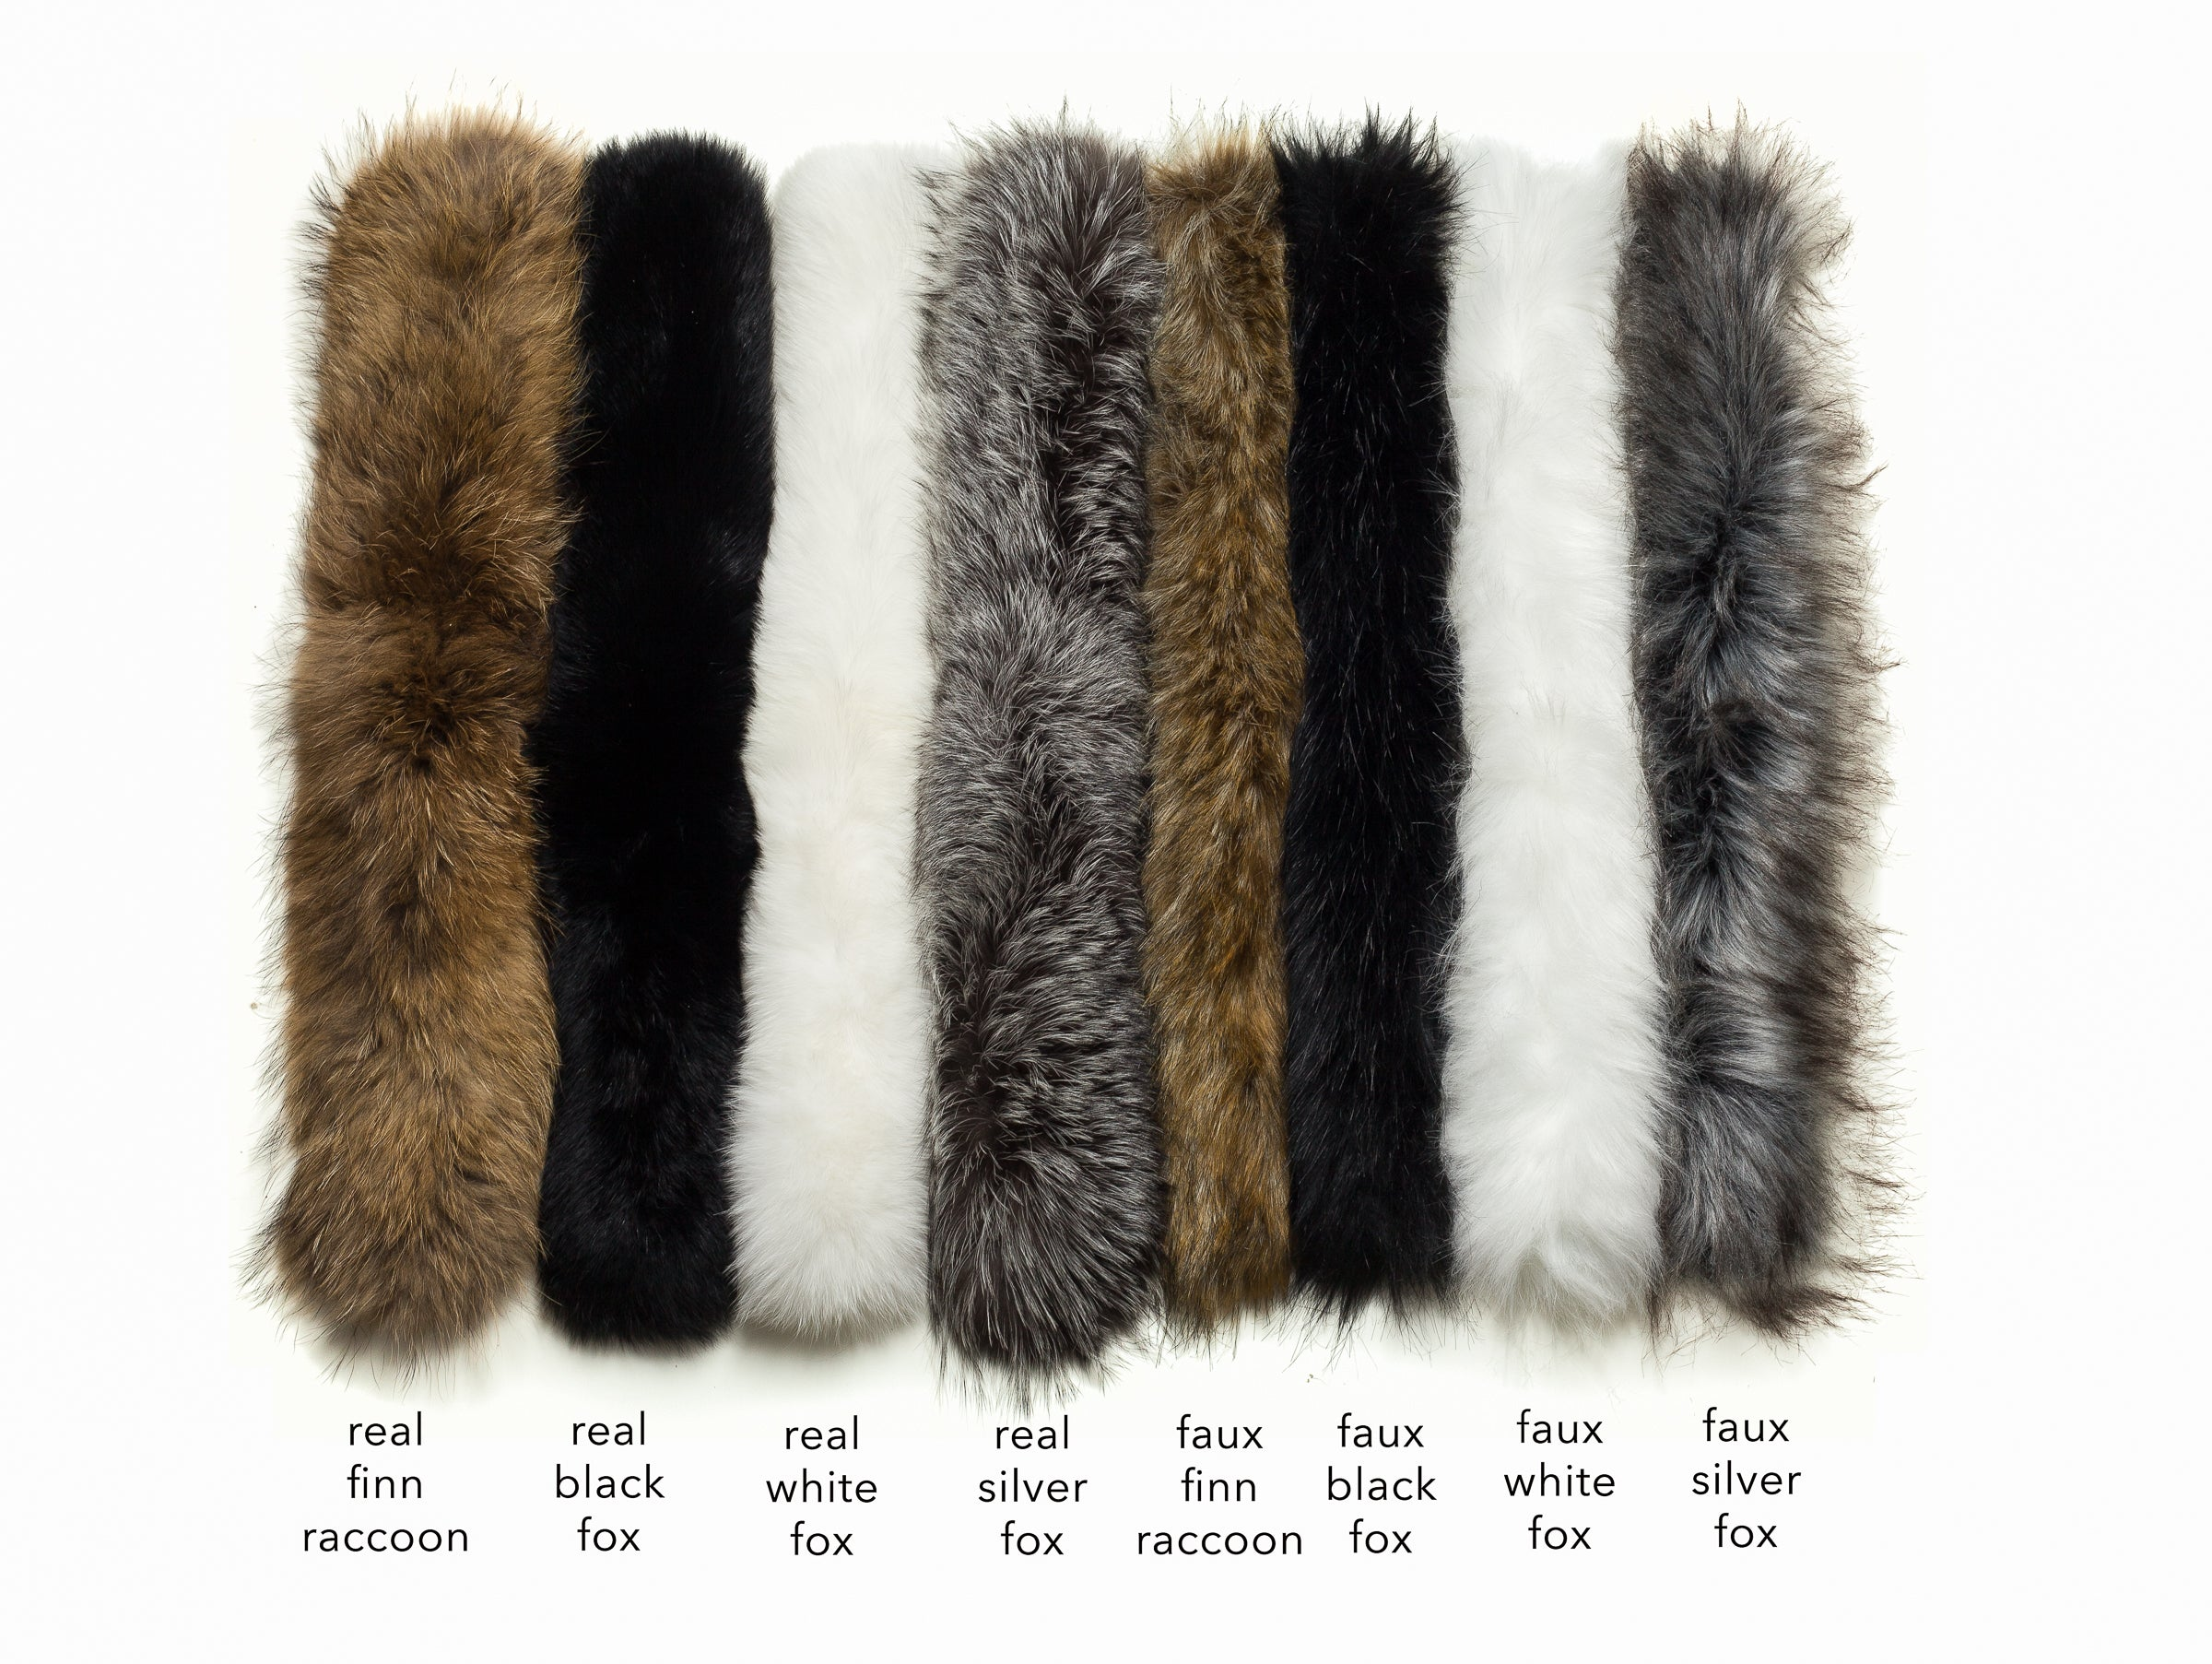 ski jackets, ski pants, luxury skiwear, ski apparel, ski fashion, fur ski apparel, fur trim, Real Black Fox Fur Border, Skea Limited, Skea Limited - Skea Limited